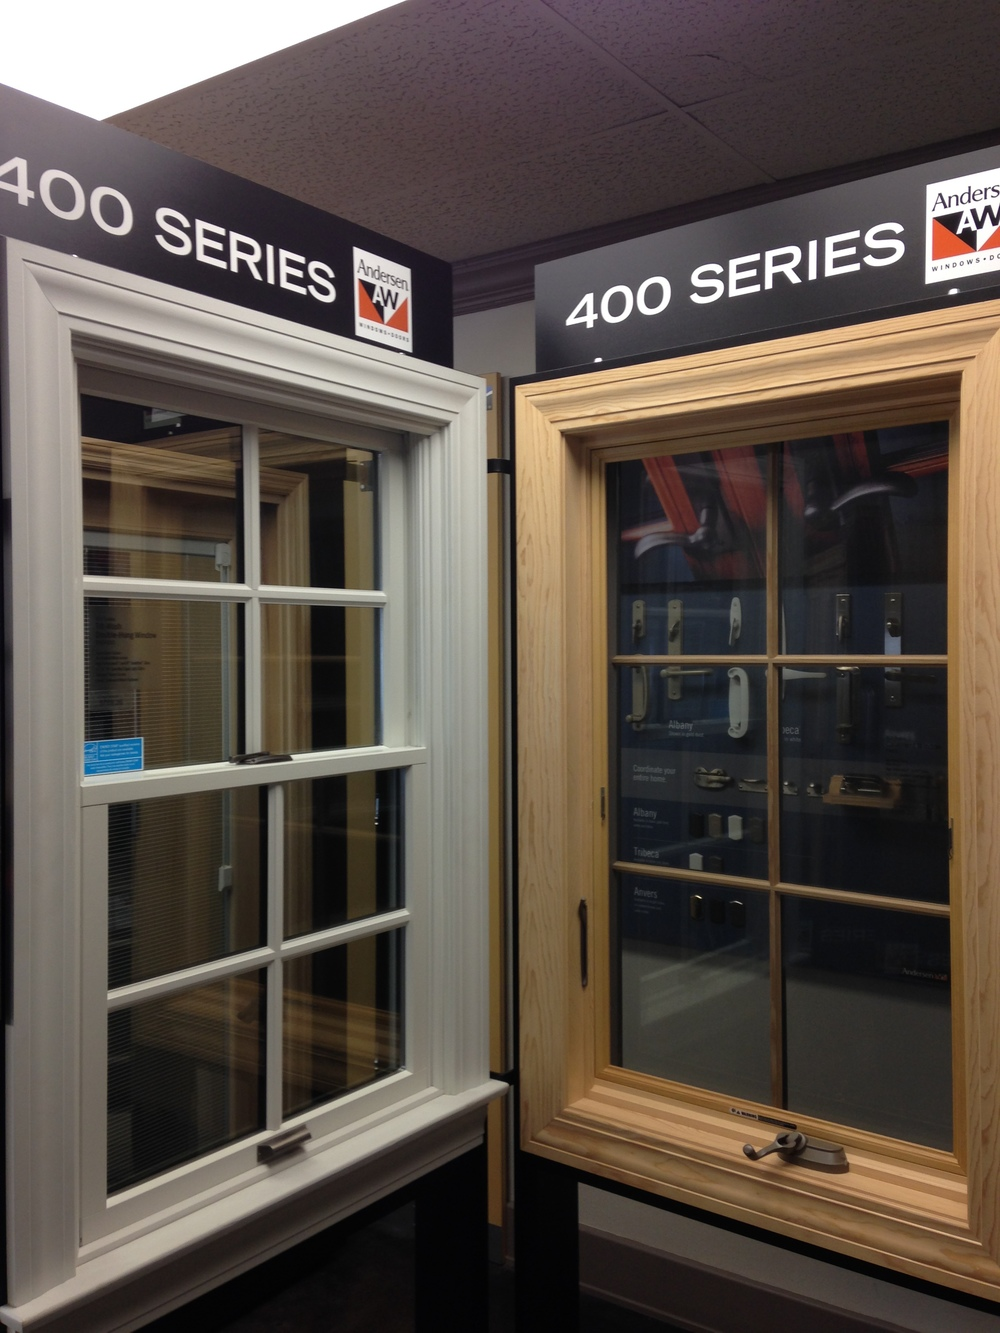 ACE Glass Carries Andersen 400 Series Windows And Doors.